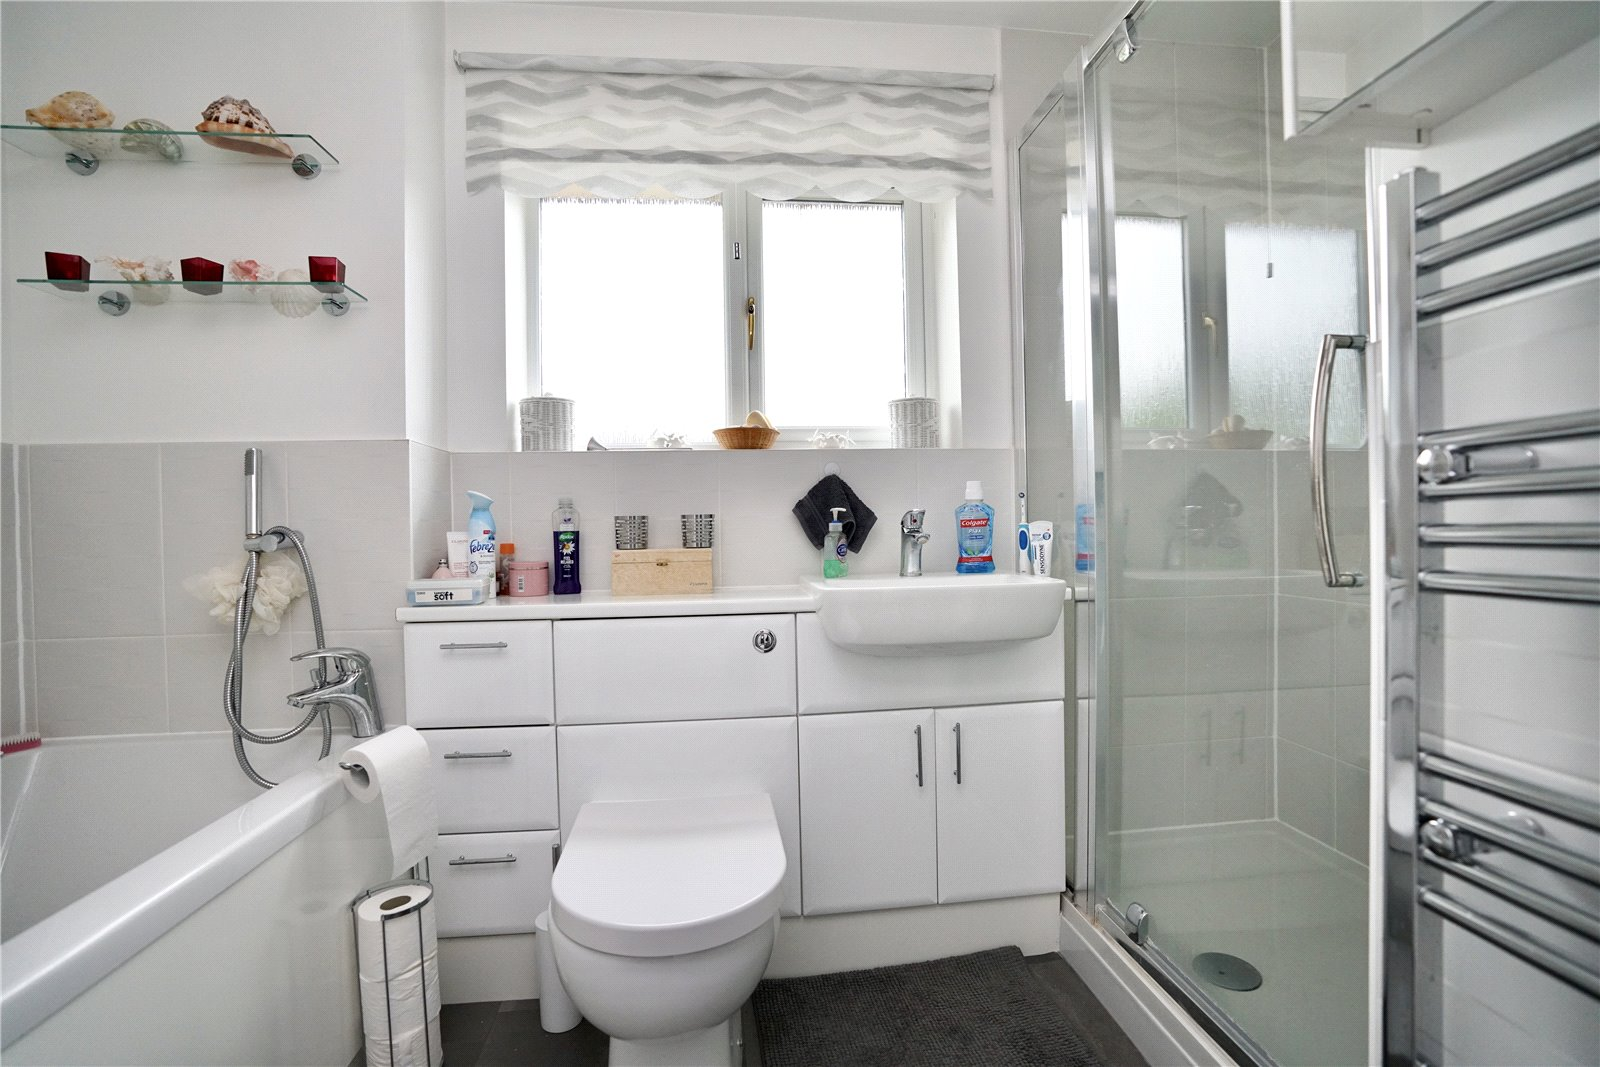 4 bed house for sale in Great Gransden  - Property Image 11